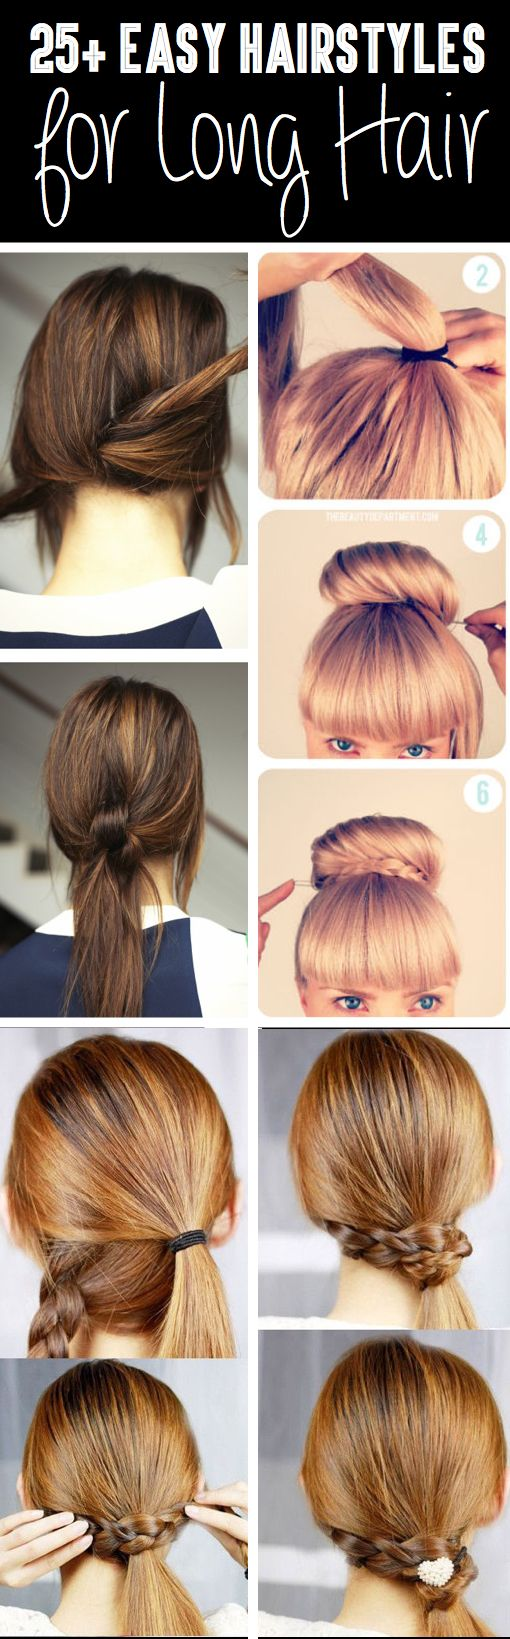 From classy to cute easy hairstyles for long hairueueueuefor when my